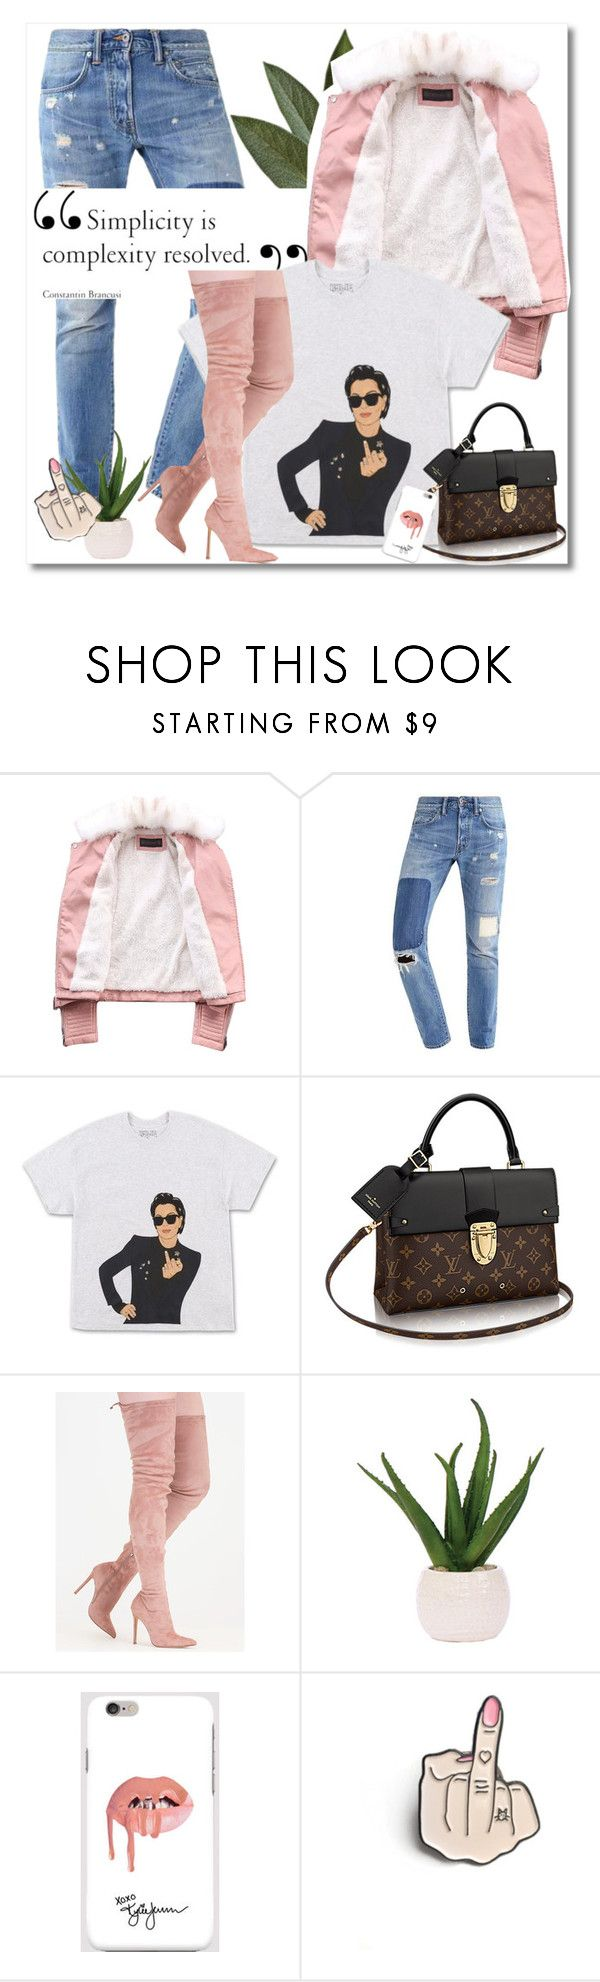 """Untitled #594"" by zalarupar ❤ liked on Polyvore featuring Kendall + Kylie and Lux-Art Silks"